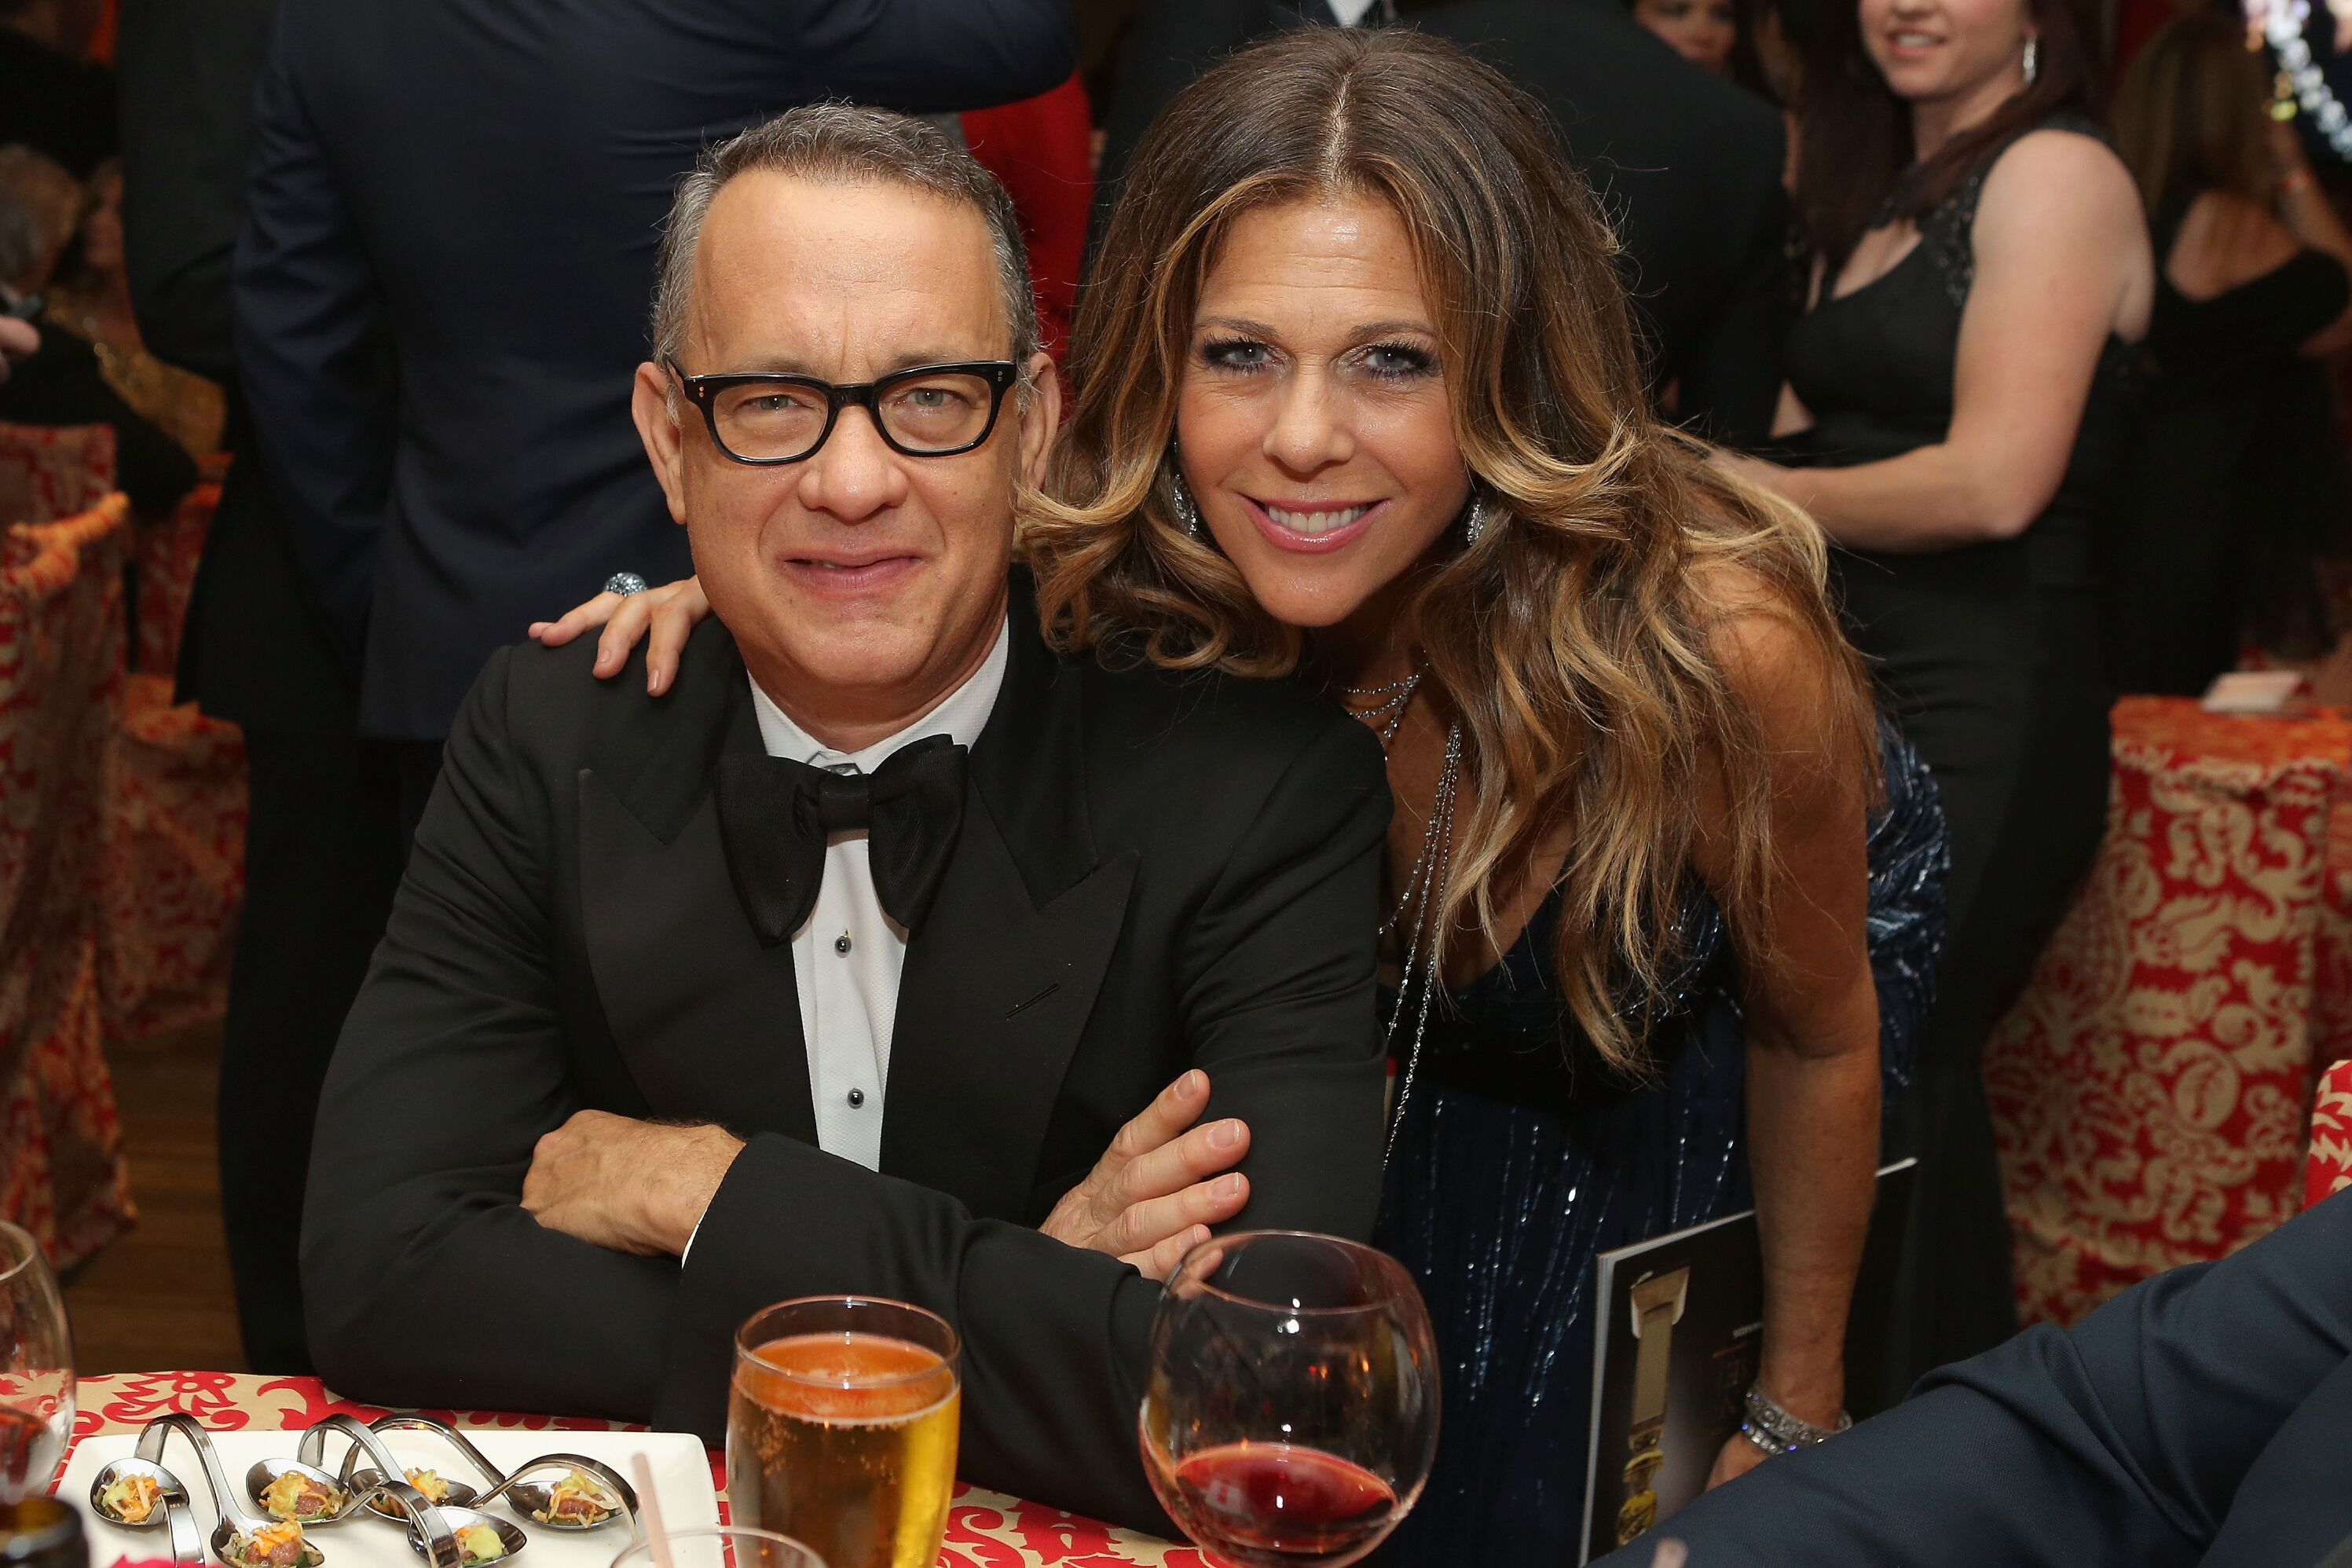 Tom Hanks and Rita Wilson at HBO's Post-Golden Globe Awards Party in 2014 | Source; Getty Images